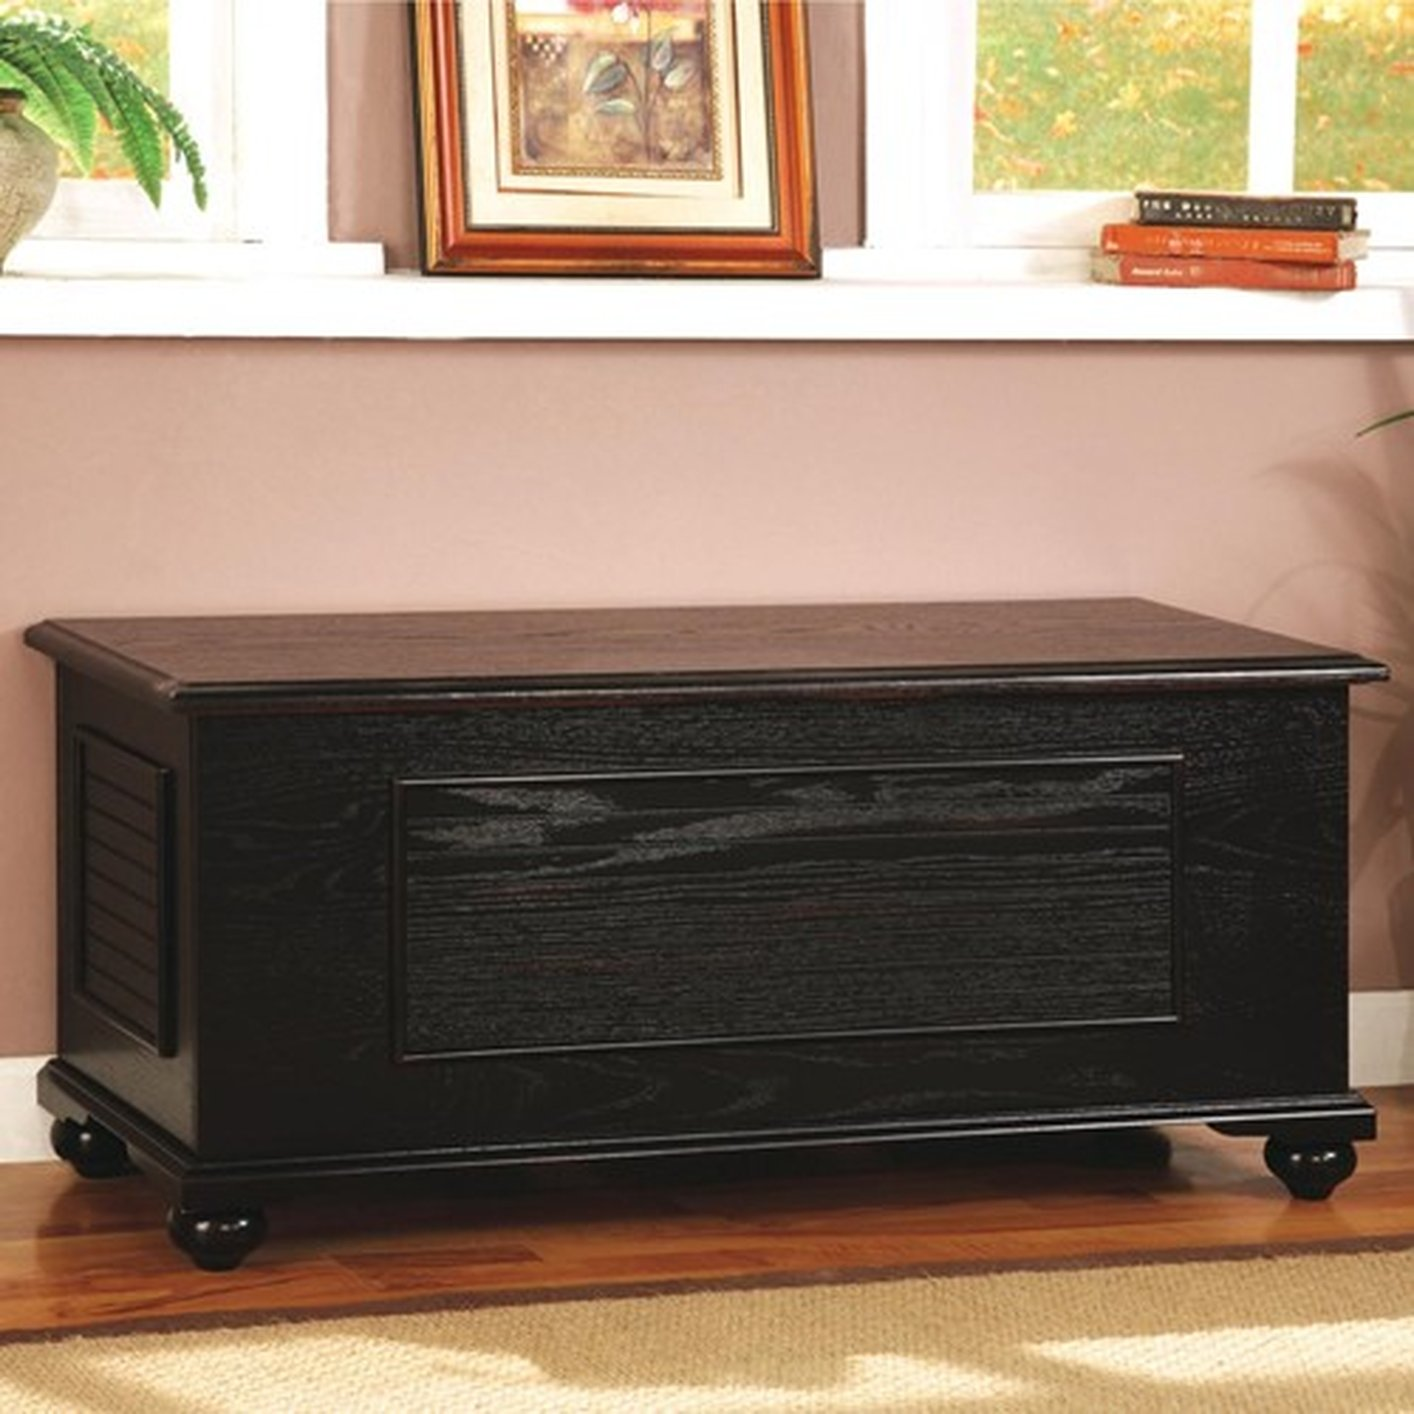 Superieur Black Wood Cedar Chest